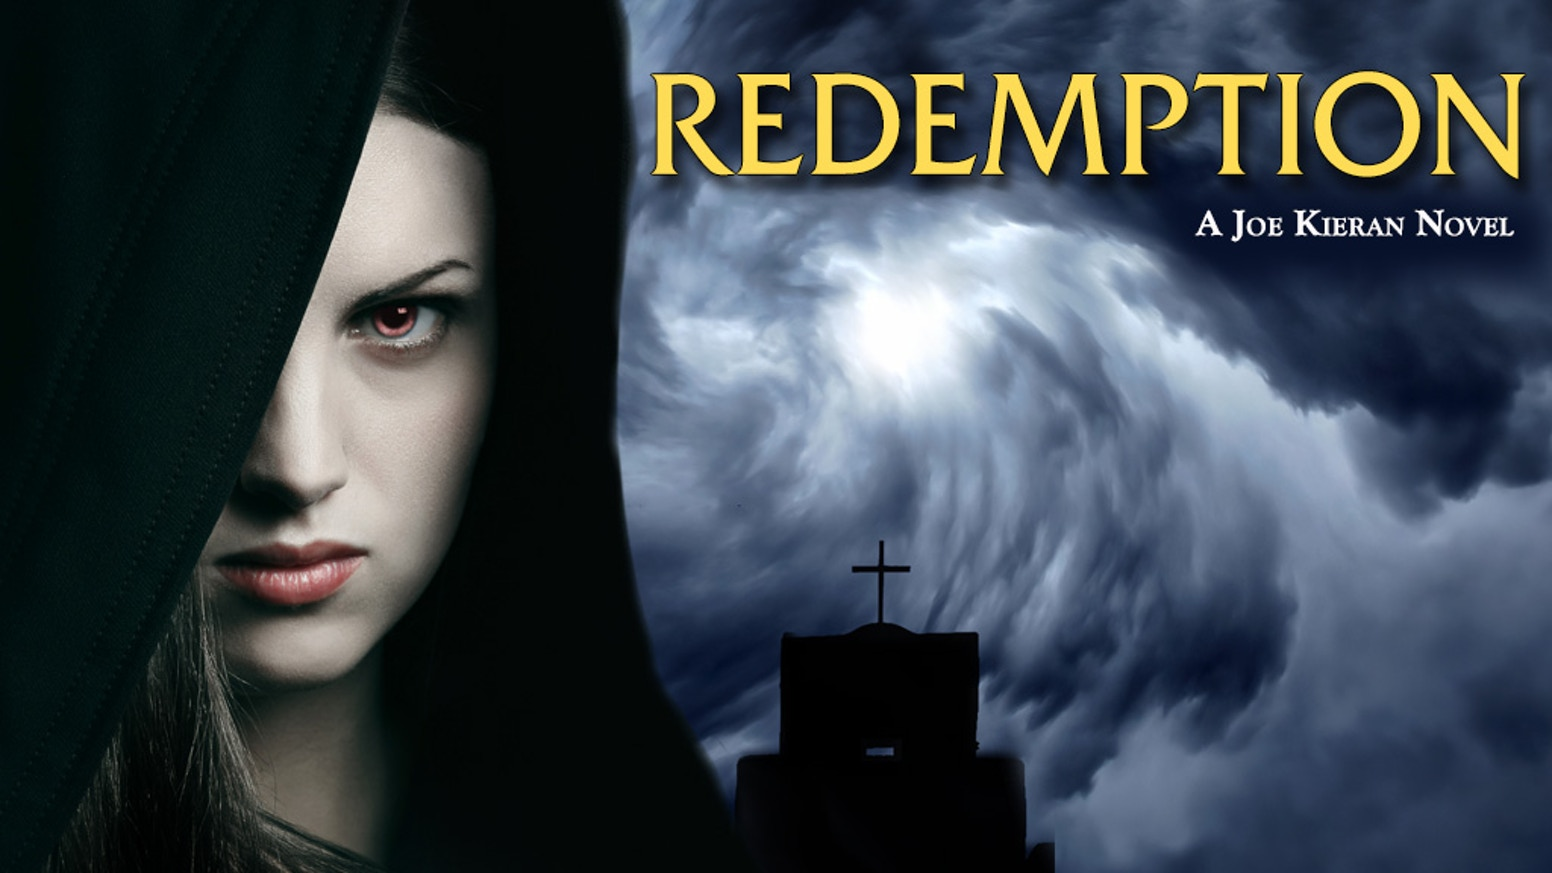 REDEMPTION, the 3rd and final book in the trilogy that began with COVENANT is now available in e-book and trade paperback!